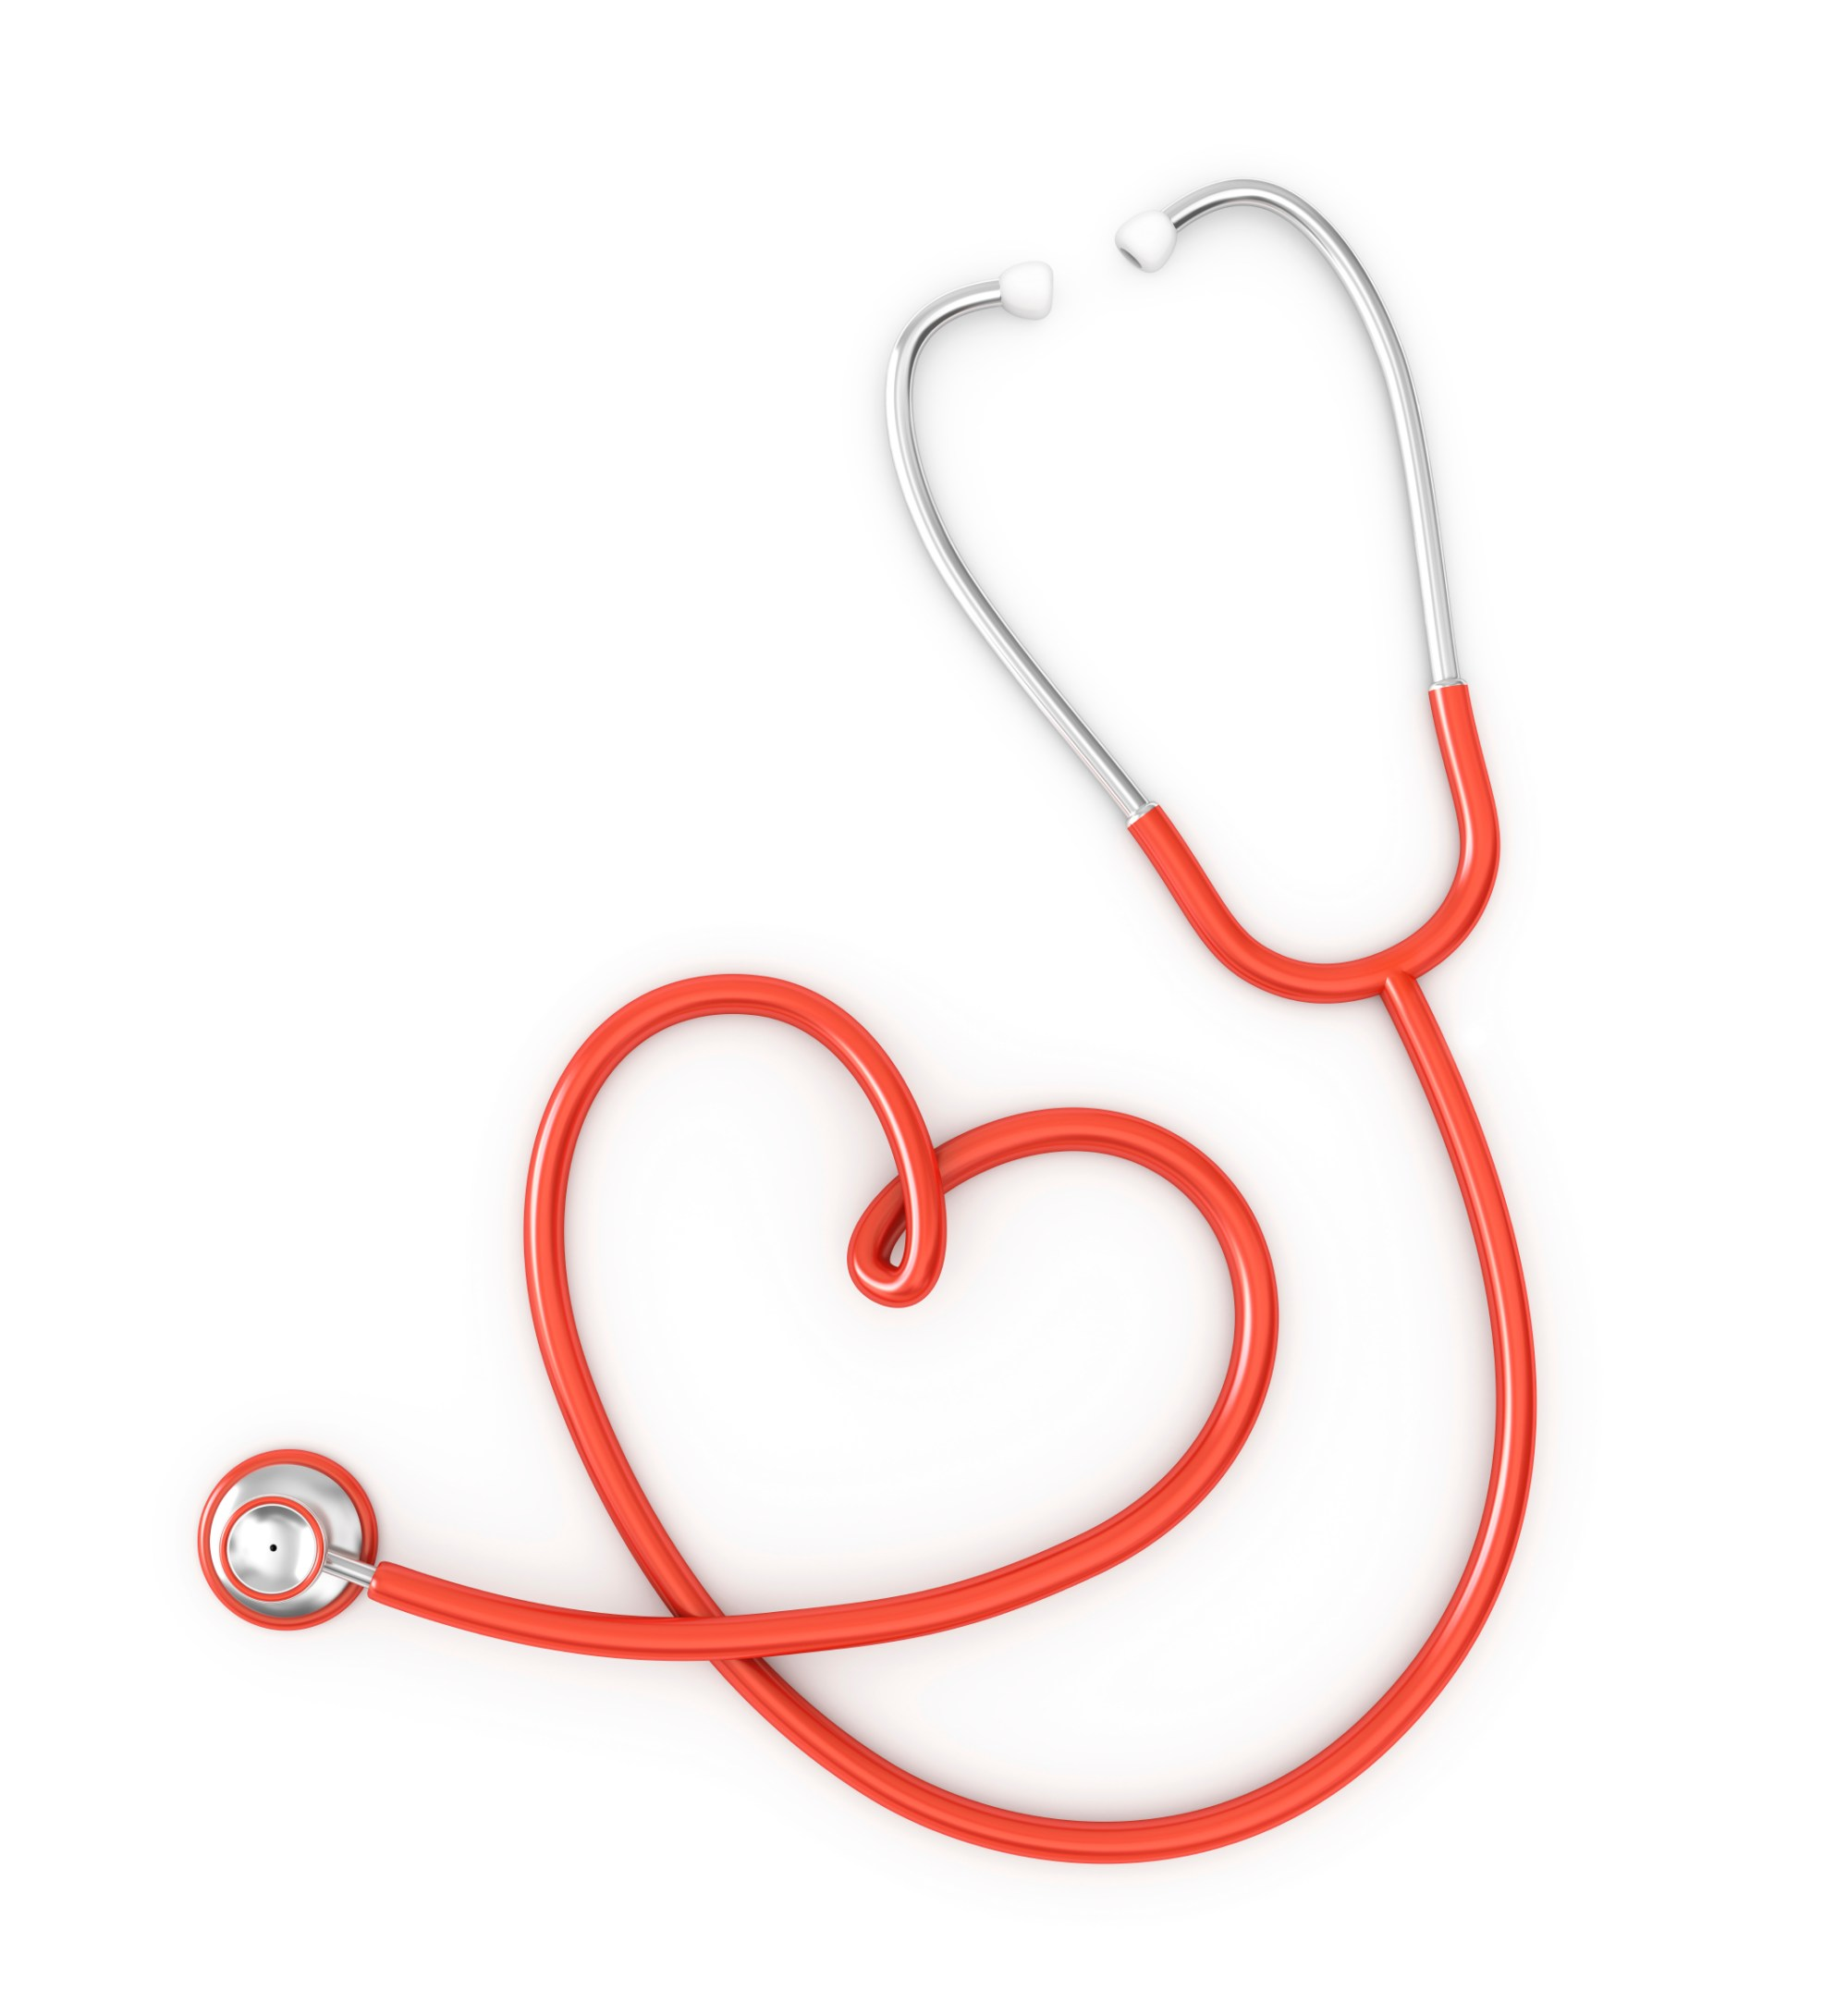 hight resolution of orange stethoscope clipart the cliparts